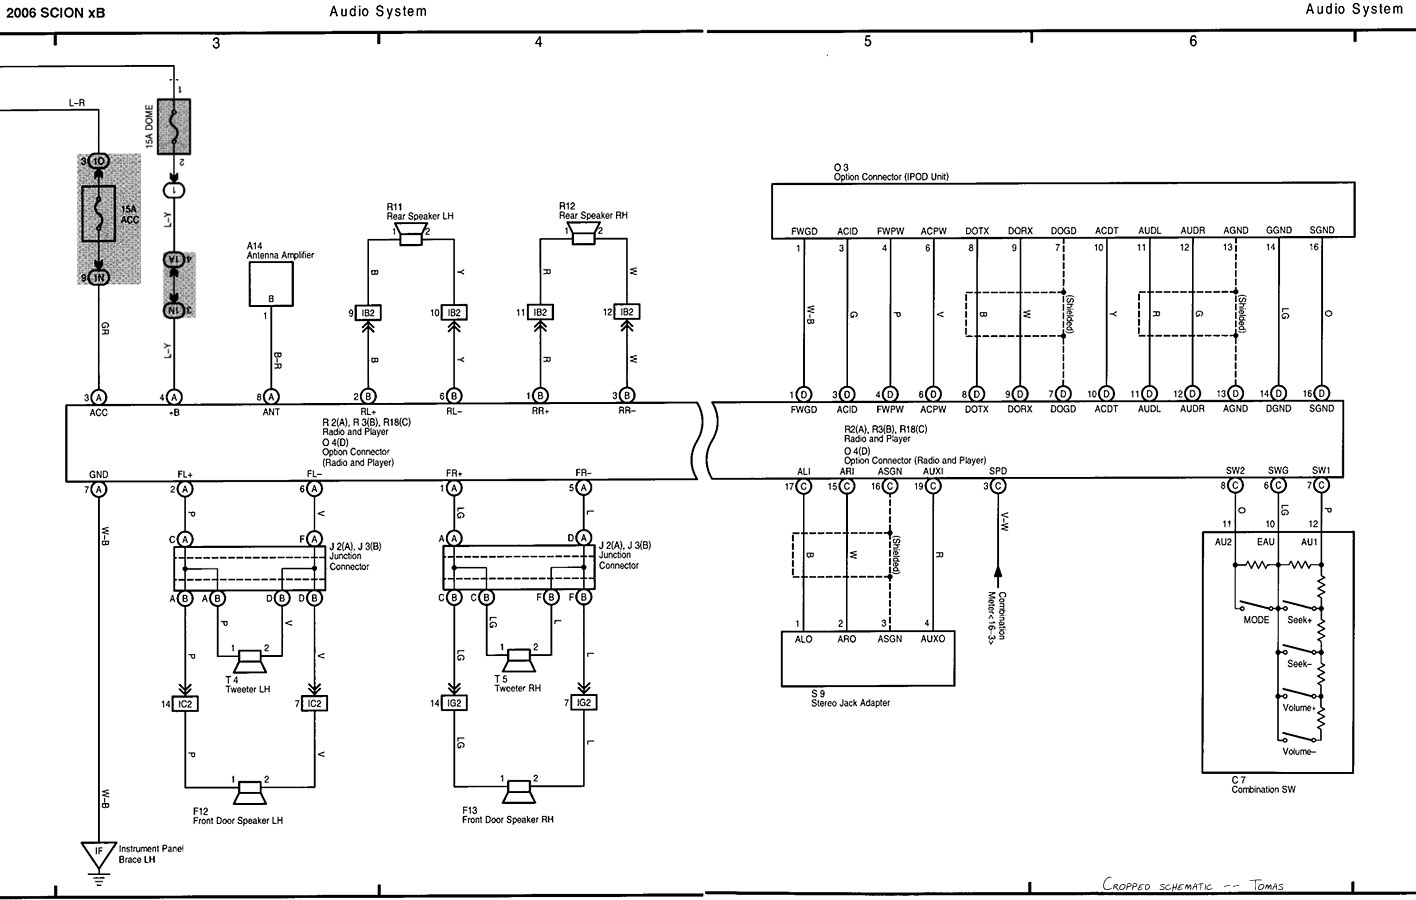 radio_06_connections?resize=665%2C423 2008 scion xb stereo wiring diagram wiring diagram frs stereo wiring diagram at gsmportal.co